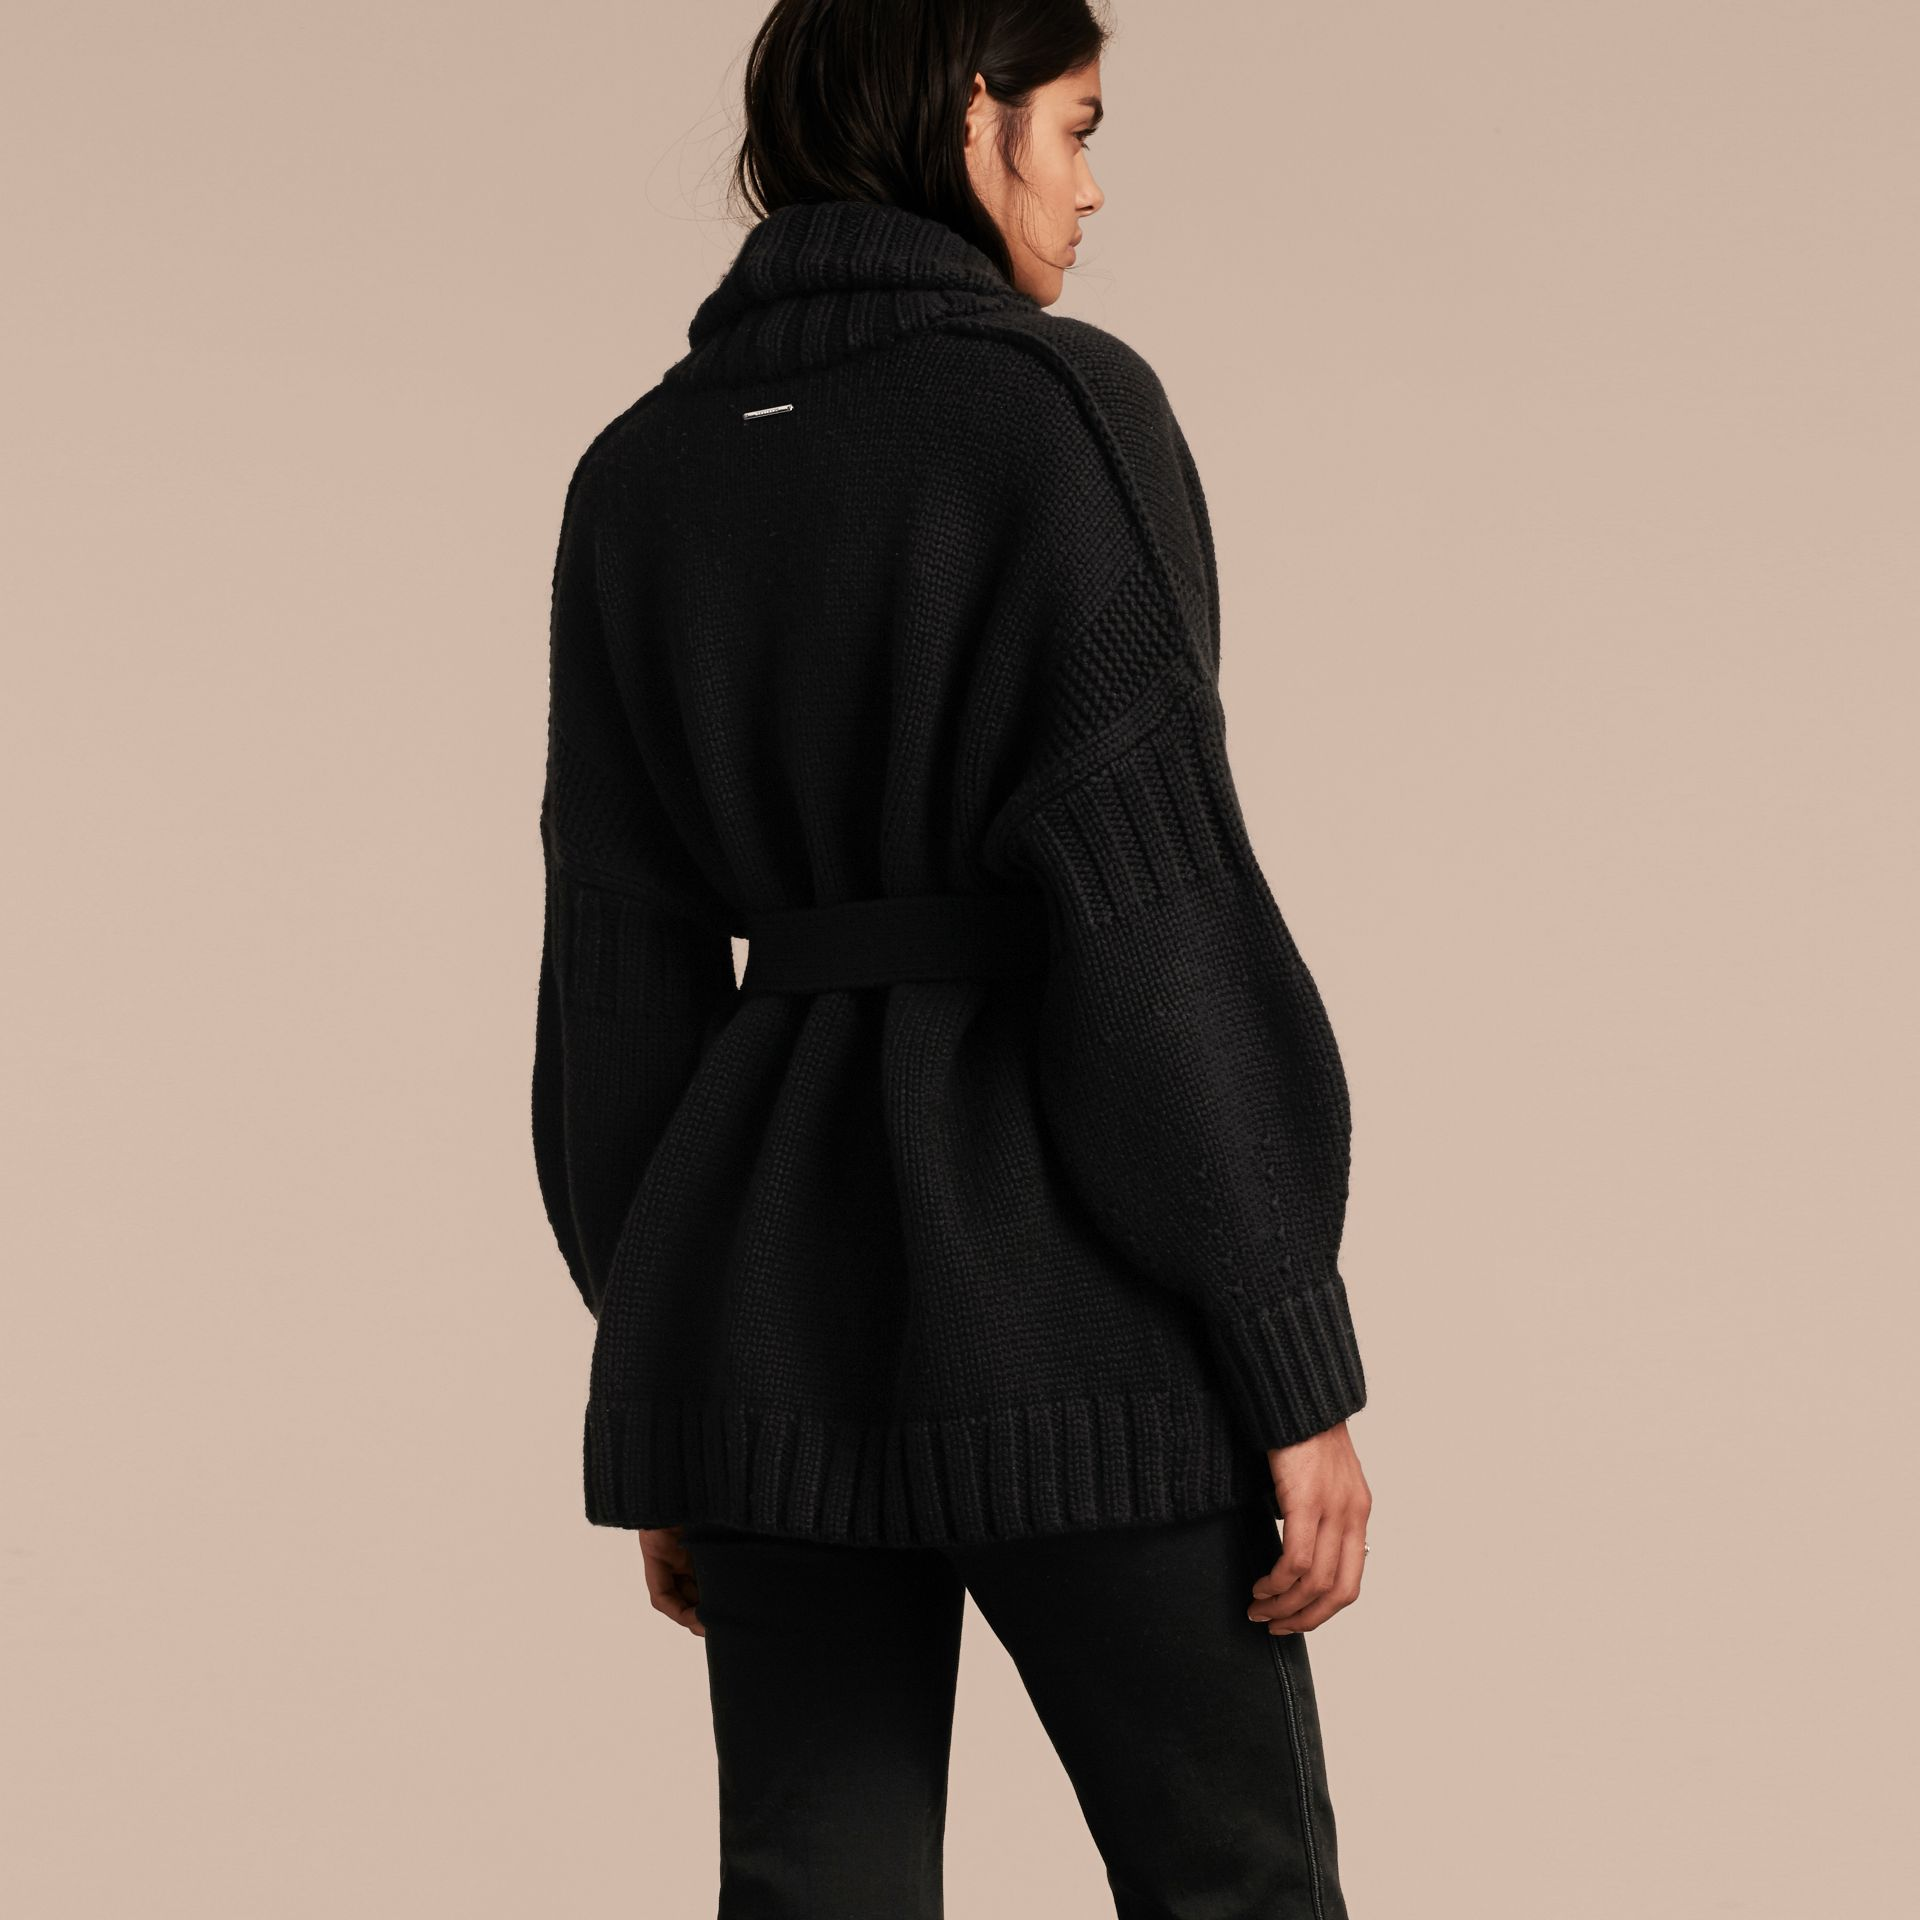 Black Knitted Wool Cashmere Belted Cardigan Jacket Black - gallery image 3